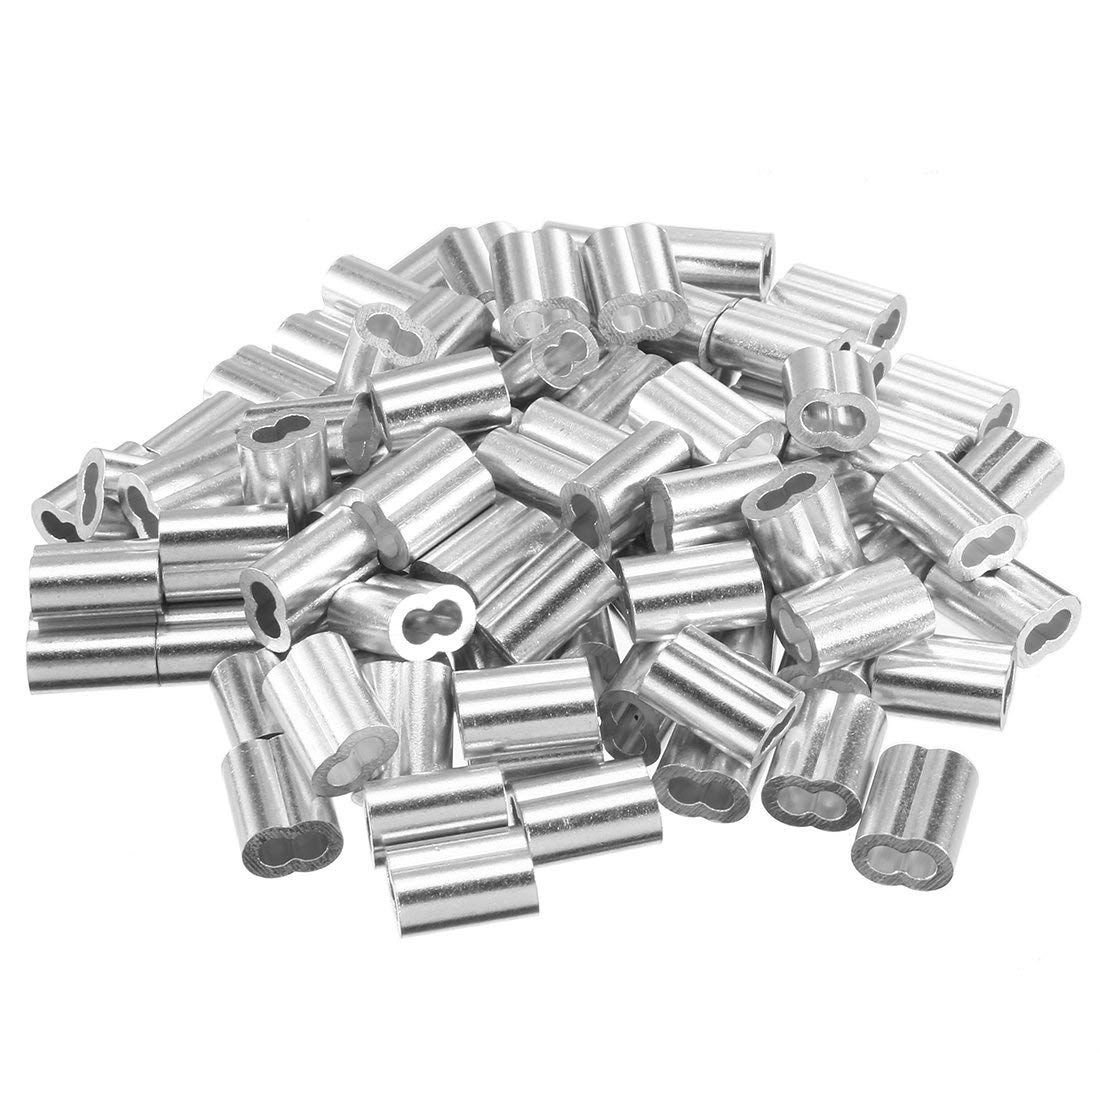 TOOGOO 5/64 inch (2mm) Diameter Wire Rope Aluminum Sleeves Clip Fittings Cable Crimps 100pcs